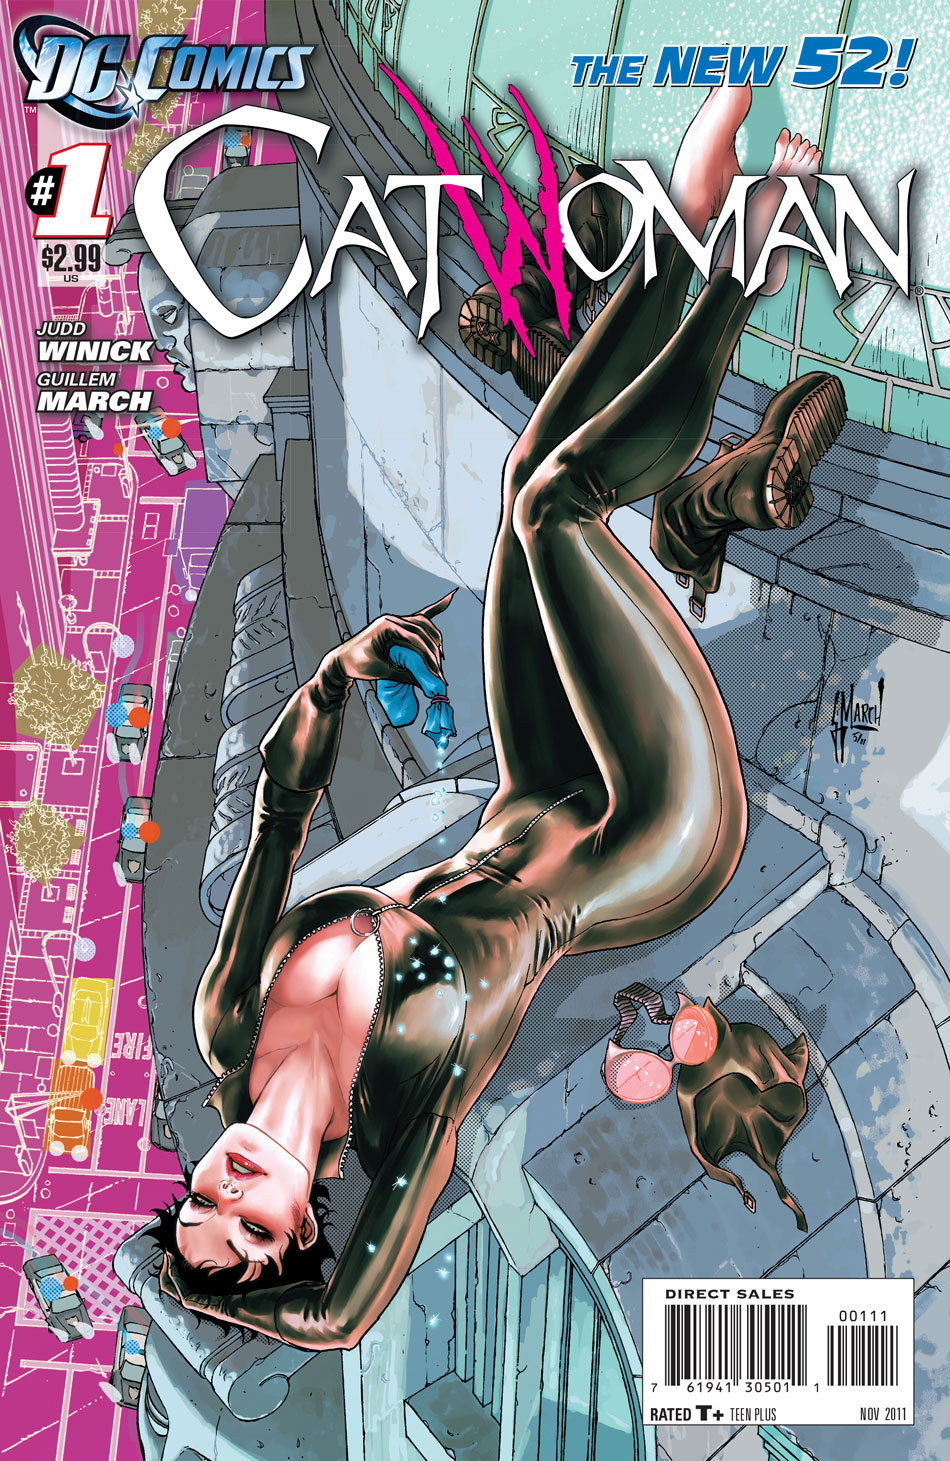 Catwoman #1 cover by Guillem March